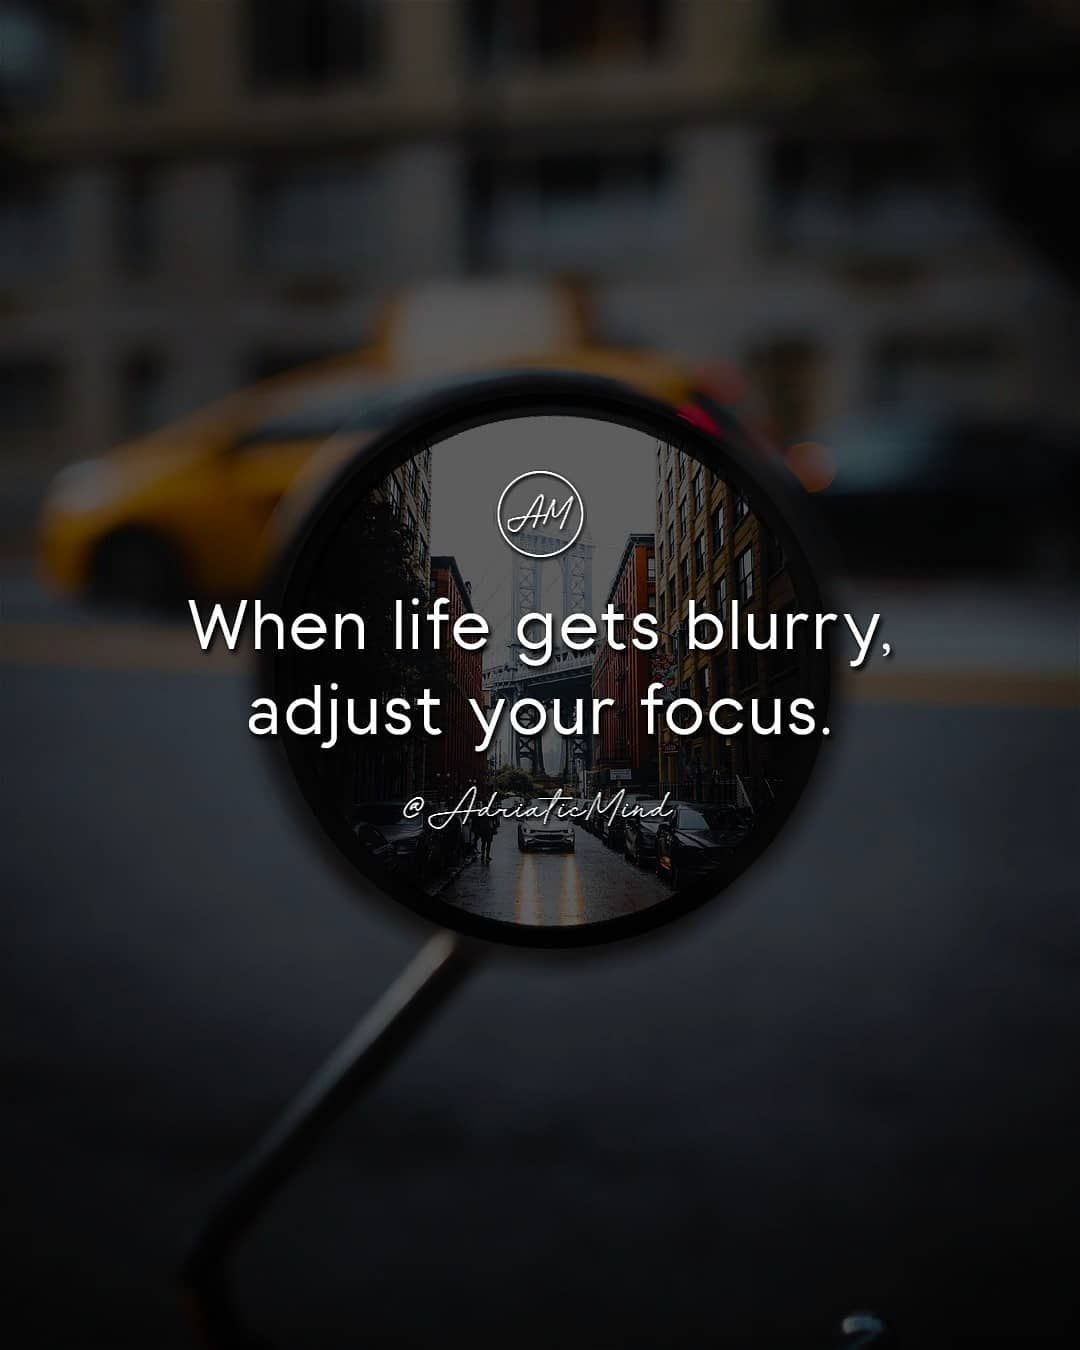 When Life Gets Blurry Adjust Your Focus Motivational Quotes For Women Instagram Adriaticmind Motivational Quotes For Women Funny Statuses Love Status